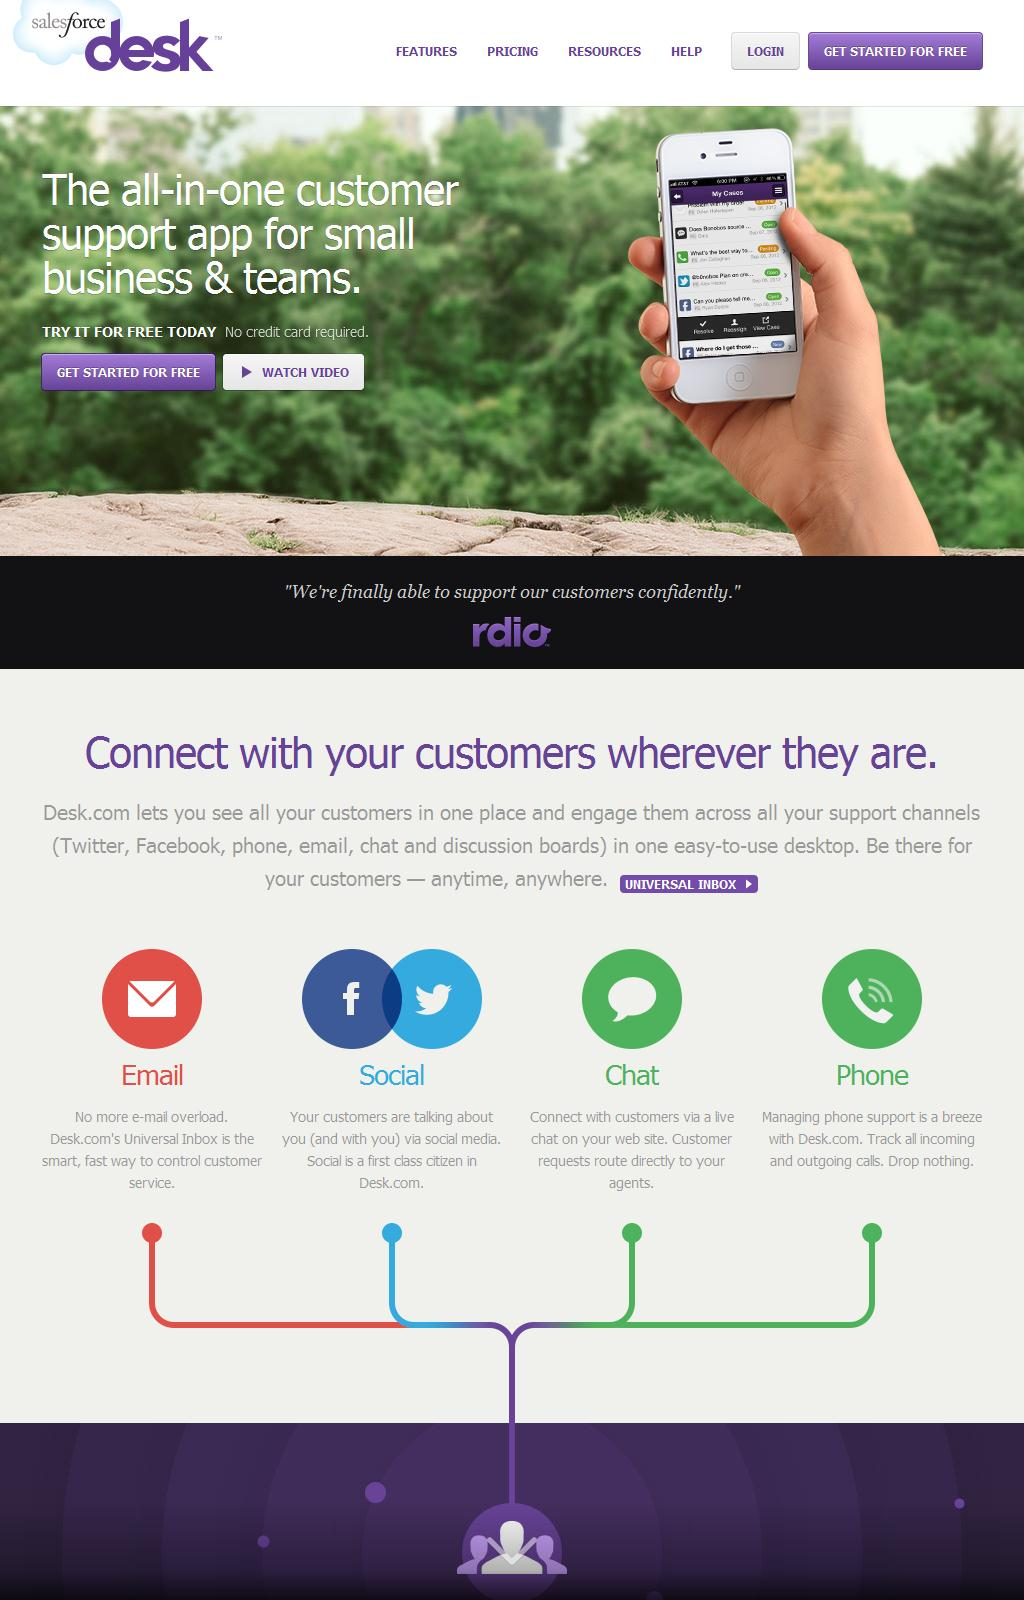 Desk.com                             - The Customer Support App for Small Business and Growing Teams